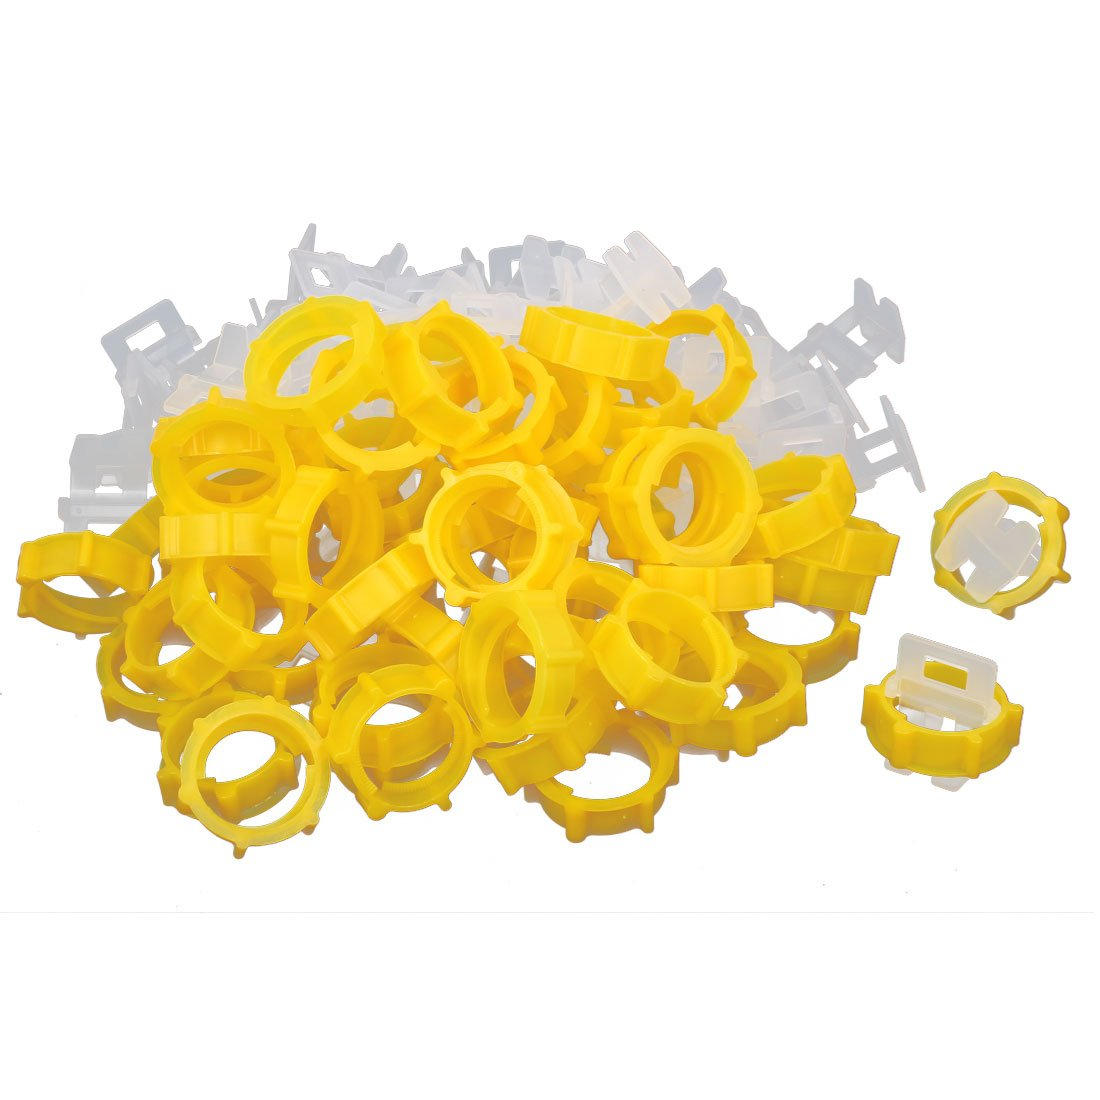 uxcell Tile Leveling System Straps Caps Clips Spacers Level Tools 100pcs for Wall Floor